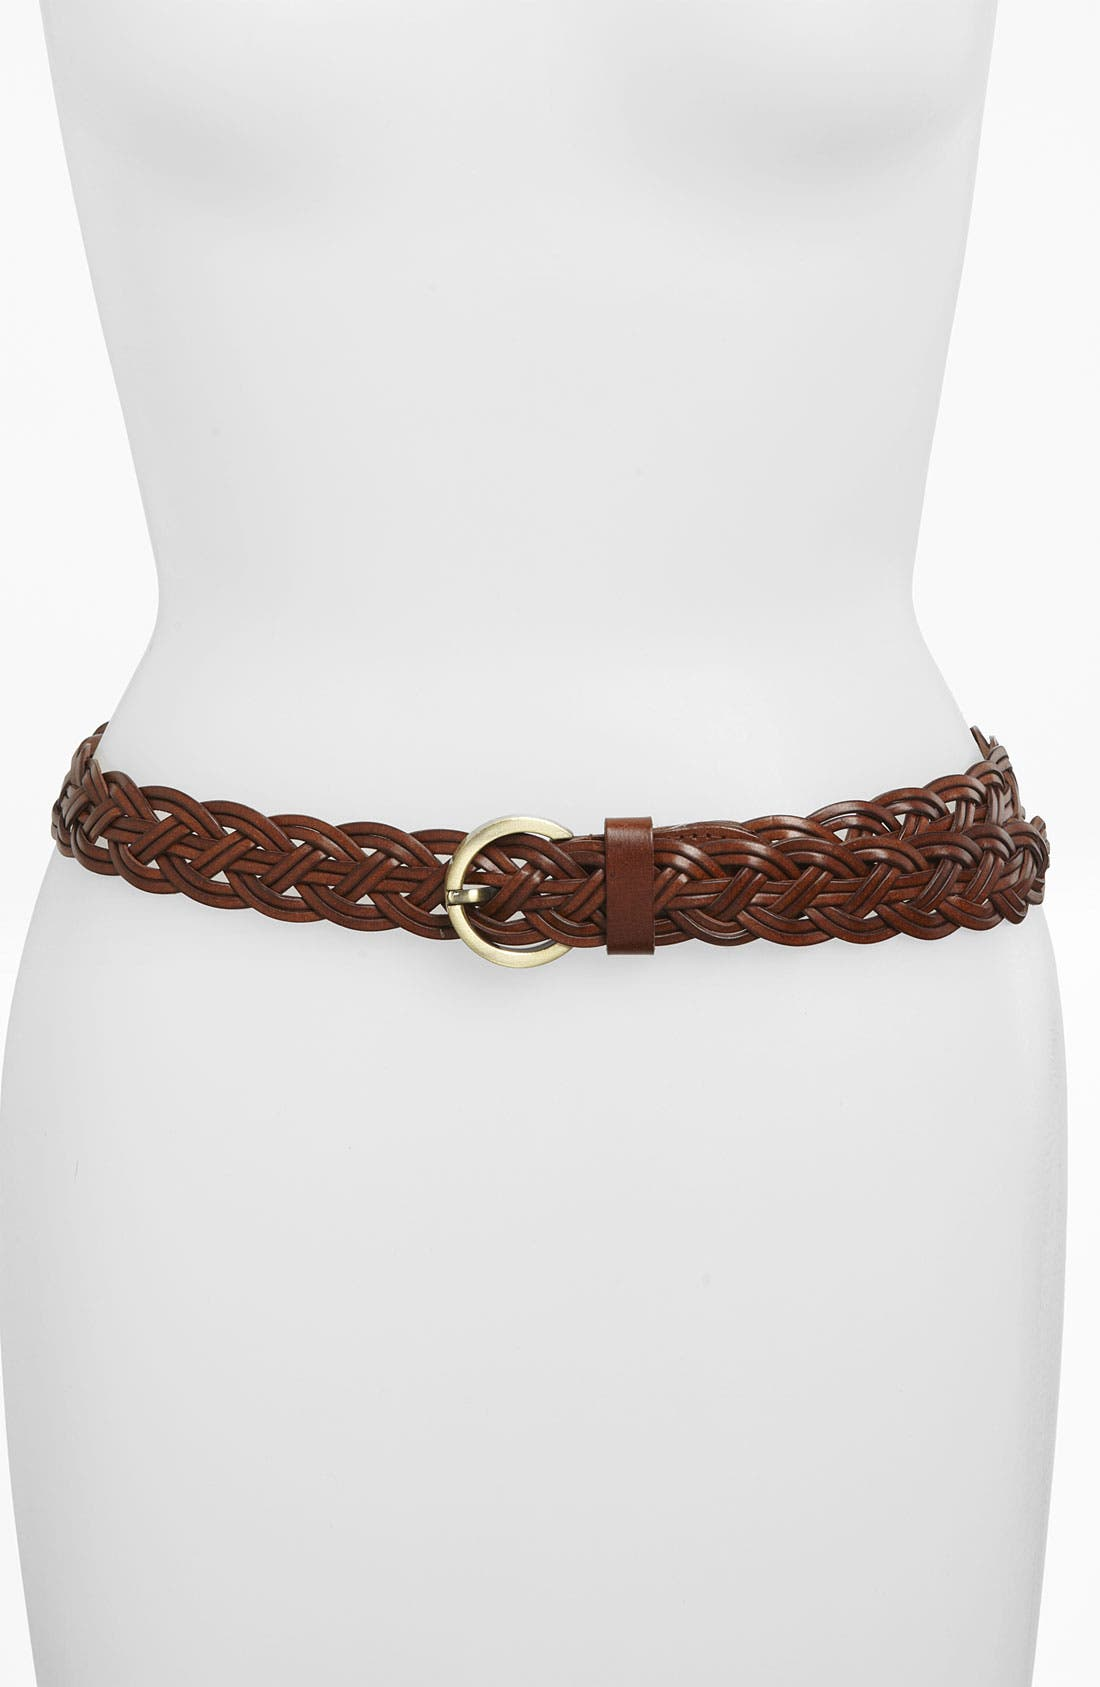 Alternate Image 1 Selected - Lulu Woven Bonded Leather Belt (Juniors) (Online Only)